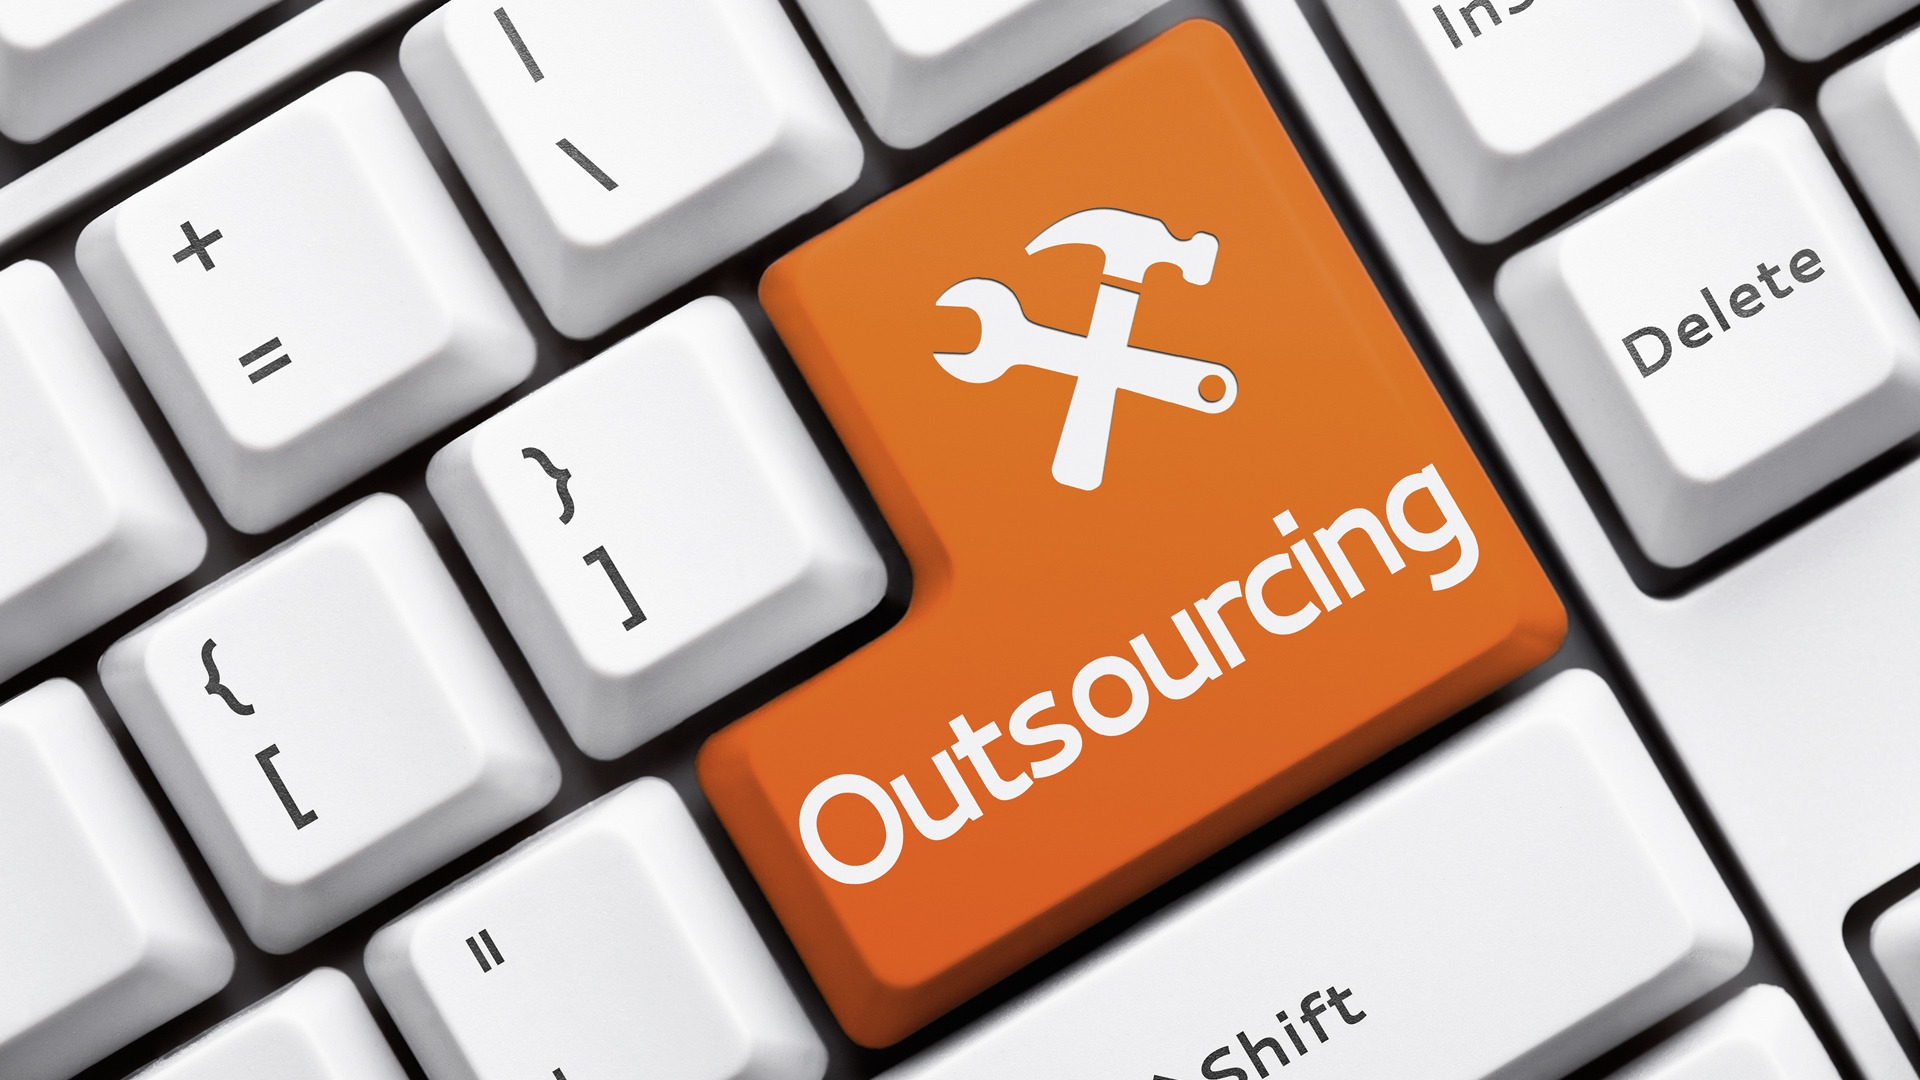 cshark_blog_outsourcing-software-projects